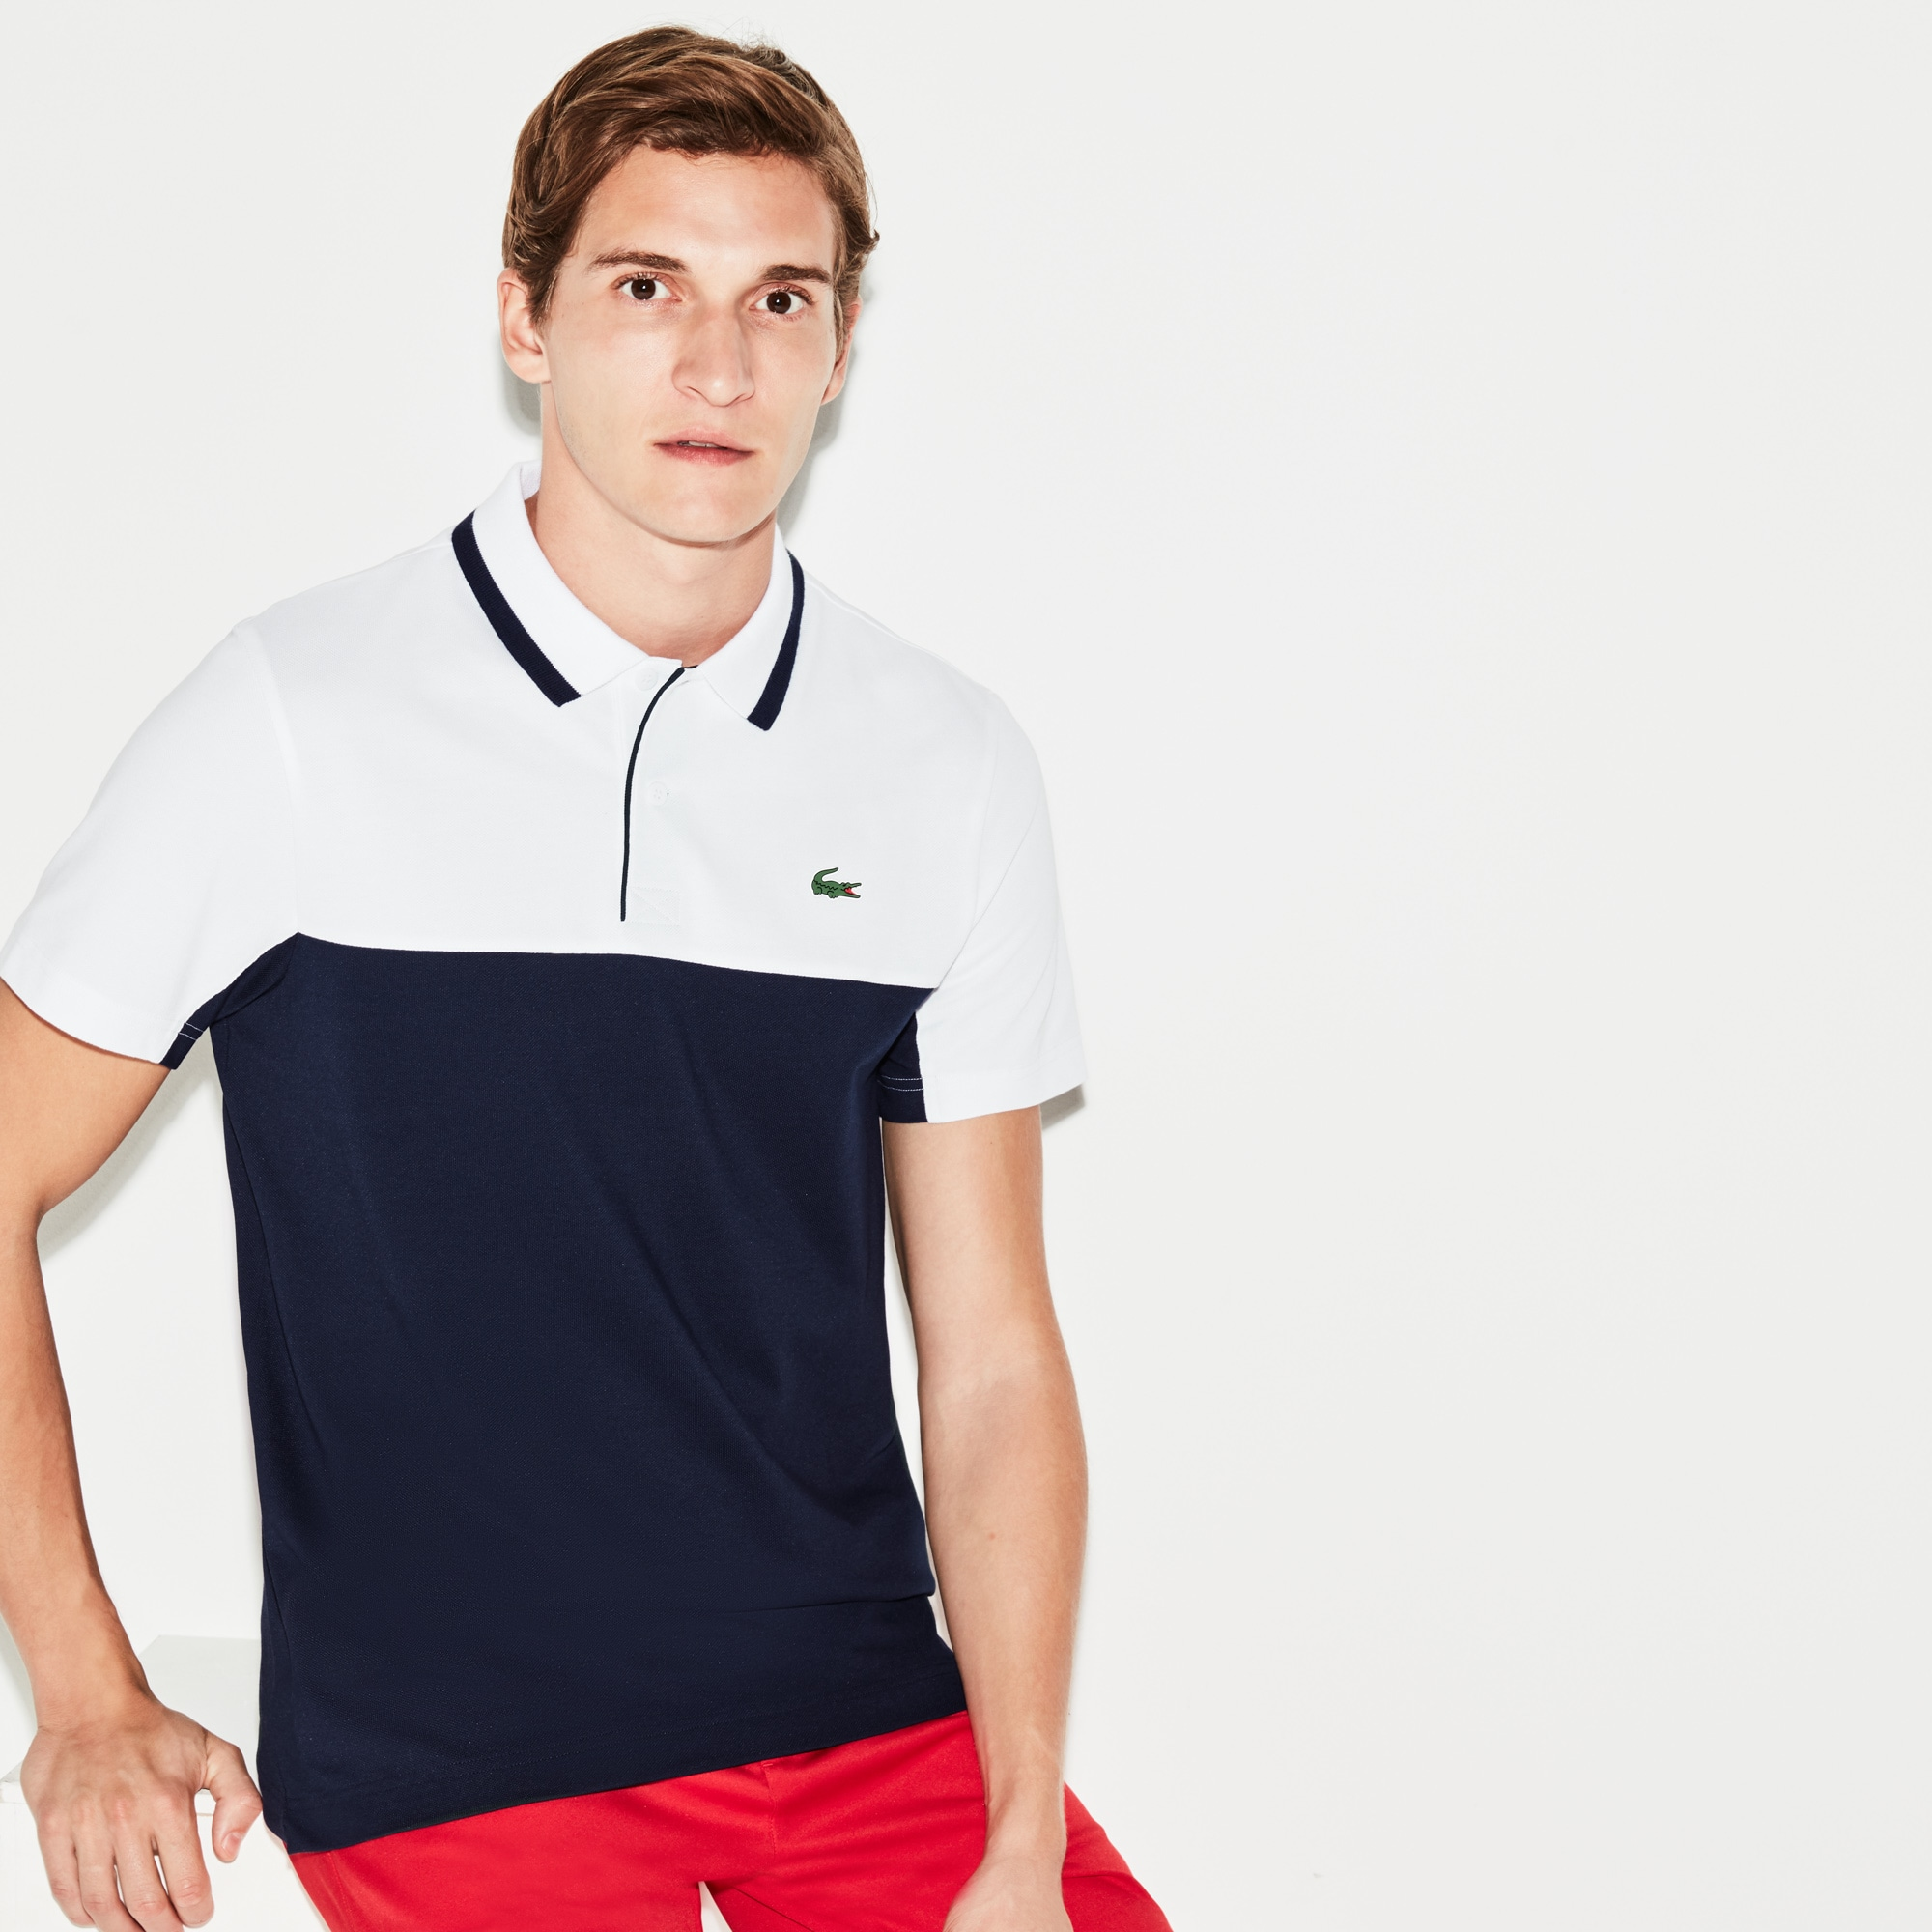 Men's Lacoste SPORT Colorblock Technical Petit Piqué Golf Polo